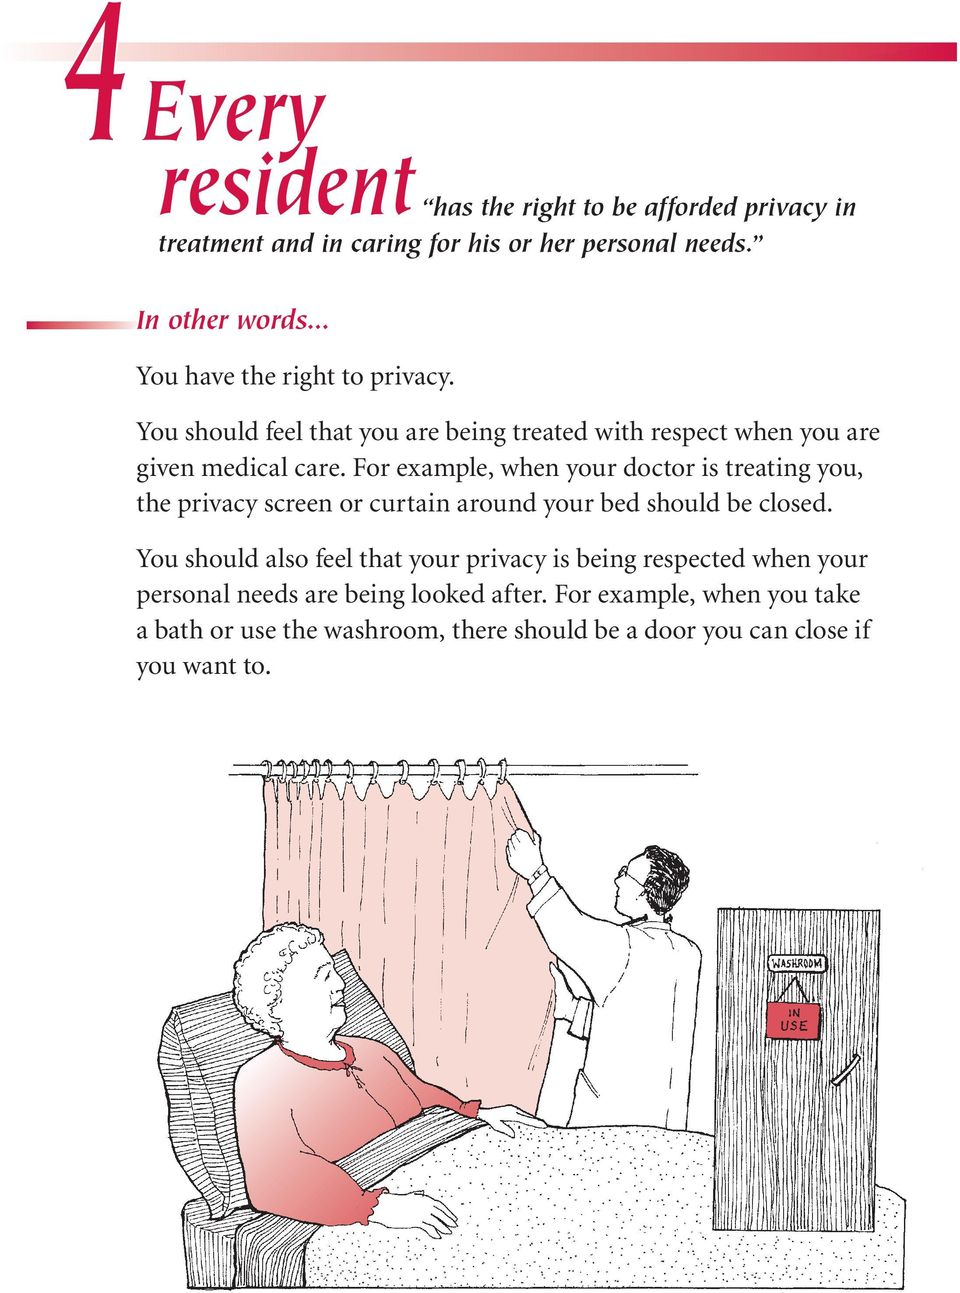 For example, when your doctor is treating you, the privacy screen or curtain around your bed should be closed.